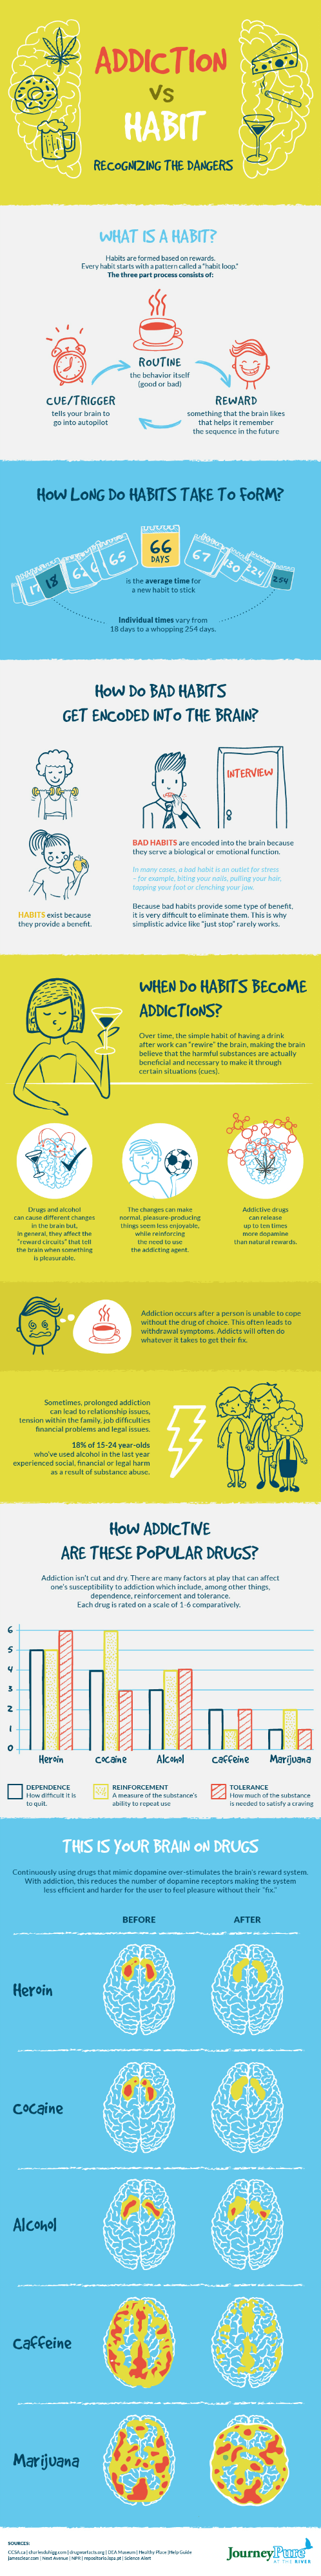 An infographic outlining the research on and the differences between addiction and habit. CC BY 3.0